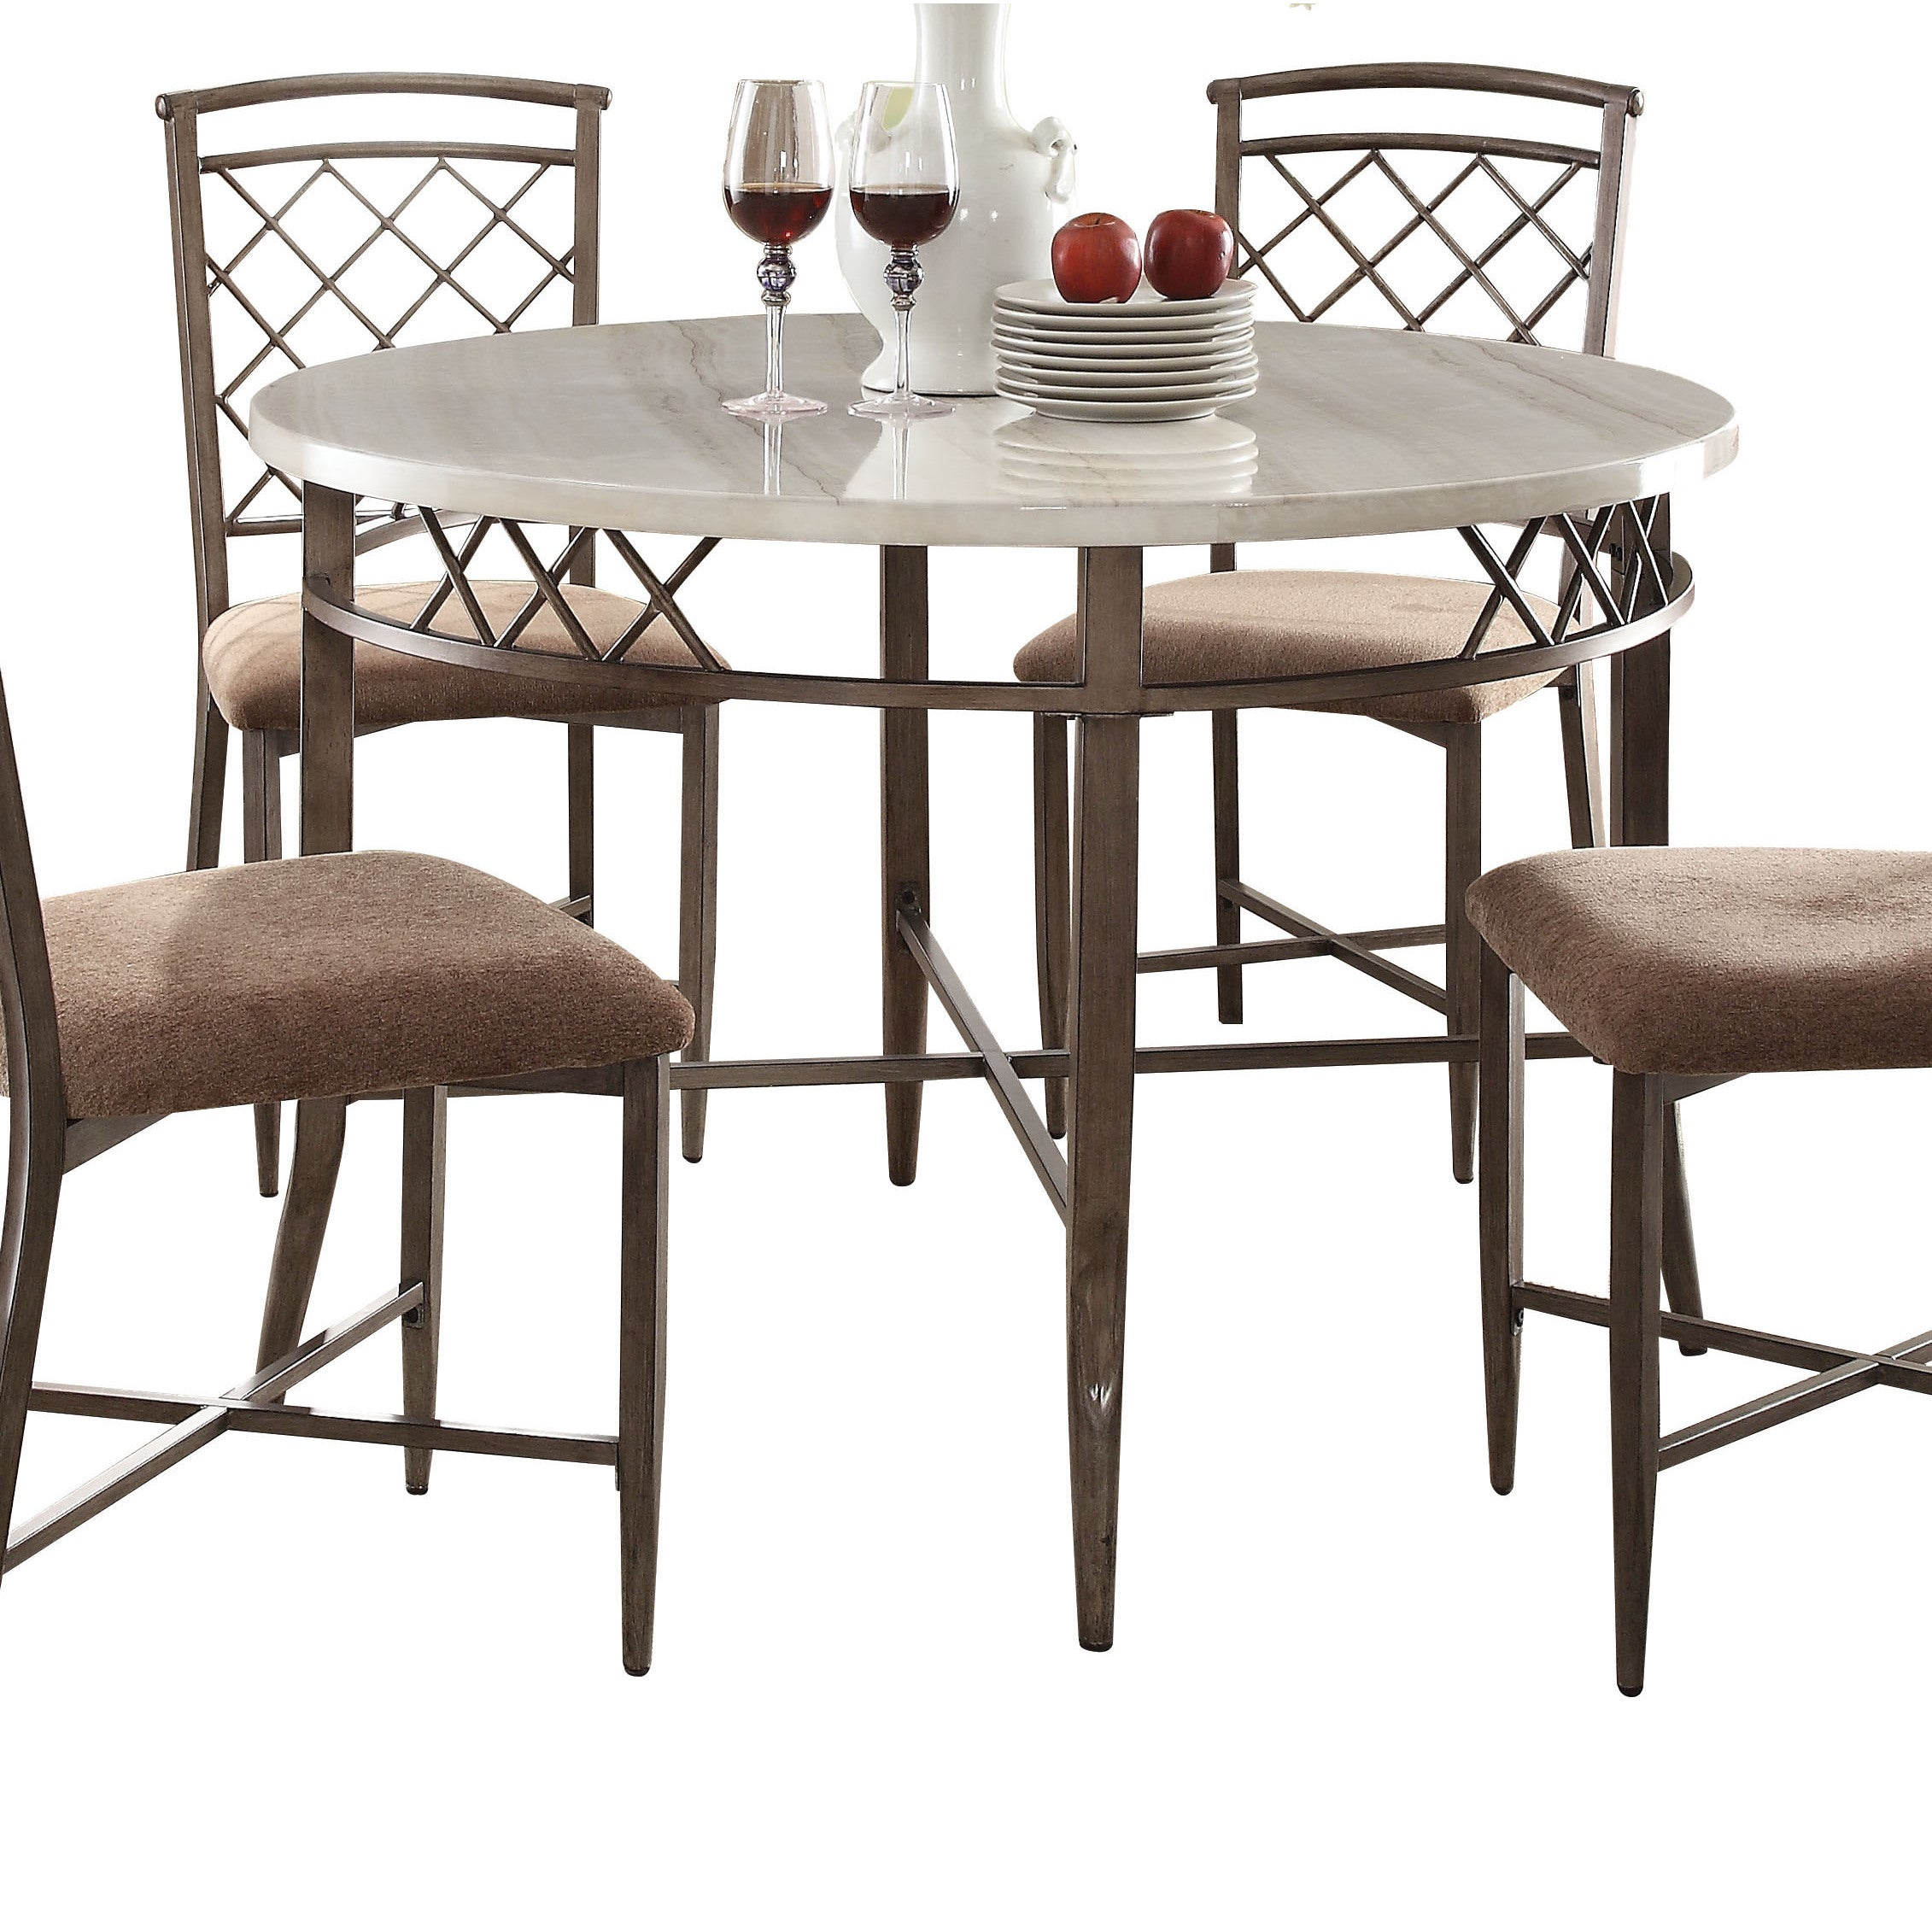 Shop Acme Furniture Aldric White Faux Marble Dining Table - Free Shipping Today - Overstock - 14253609  sc 1 st  Overstock.com & Shop Acme Furniture Aldric White Faux Marble Dining Table - Free ...